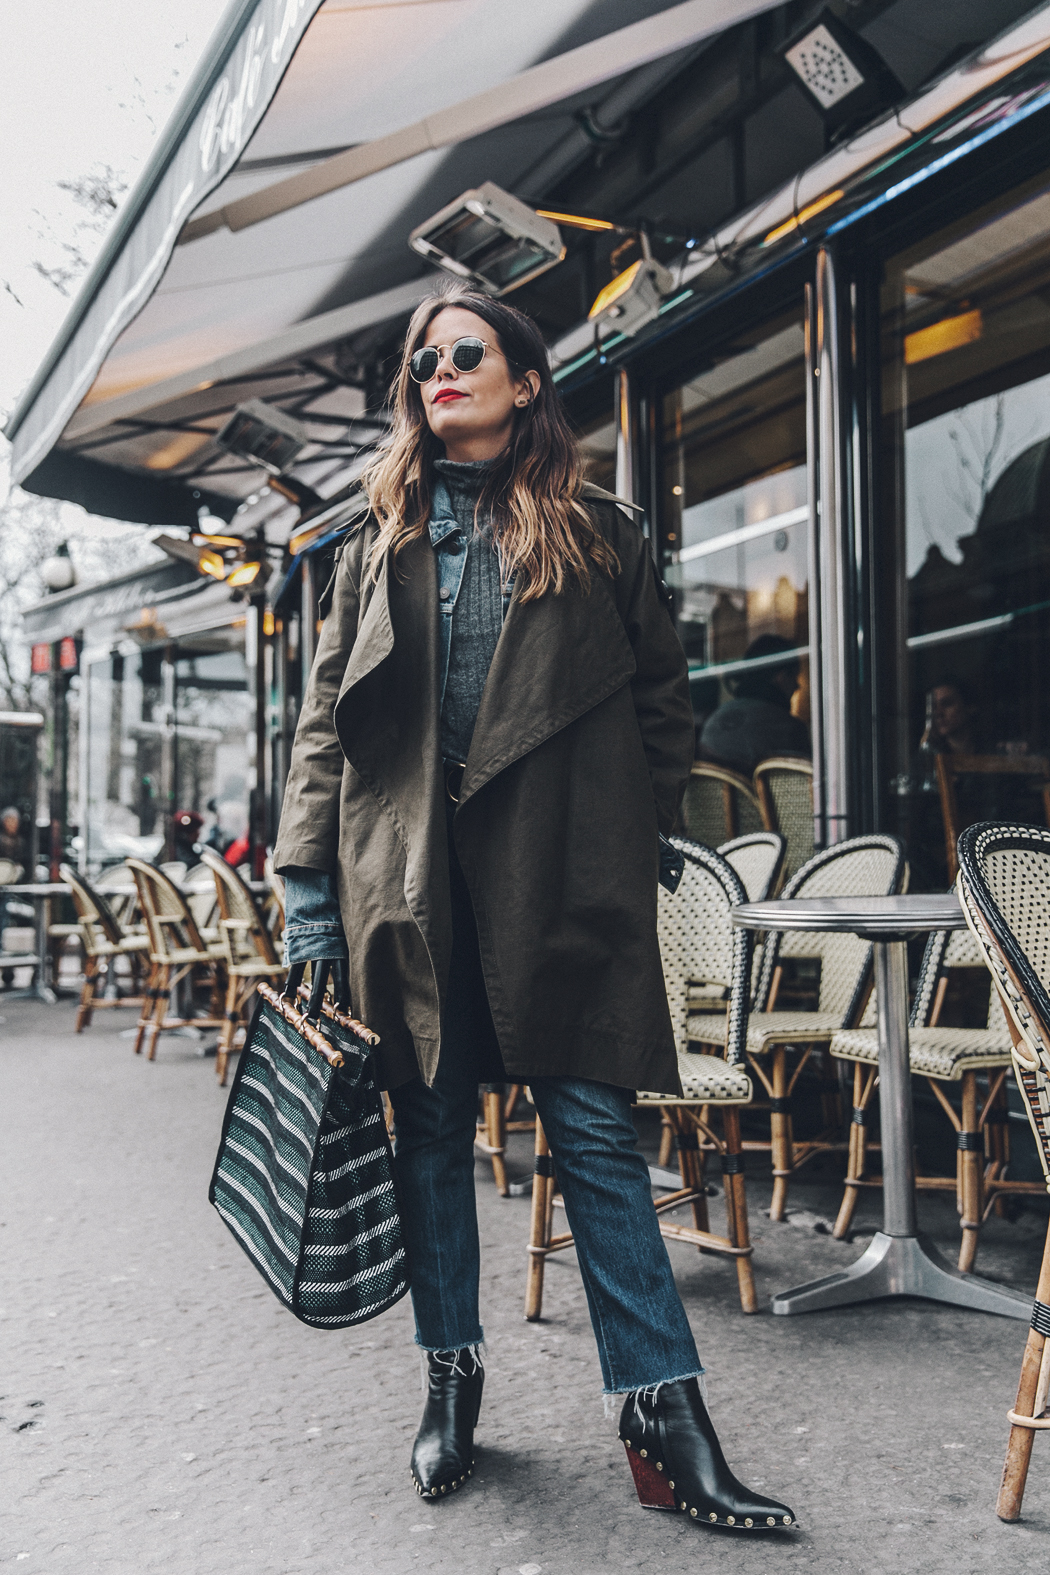 Layers-Denim_Levis-Parka-Striiped_Basket-Outfit-Celine_Boots-Street_Style-21